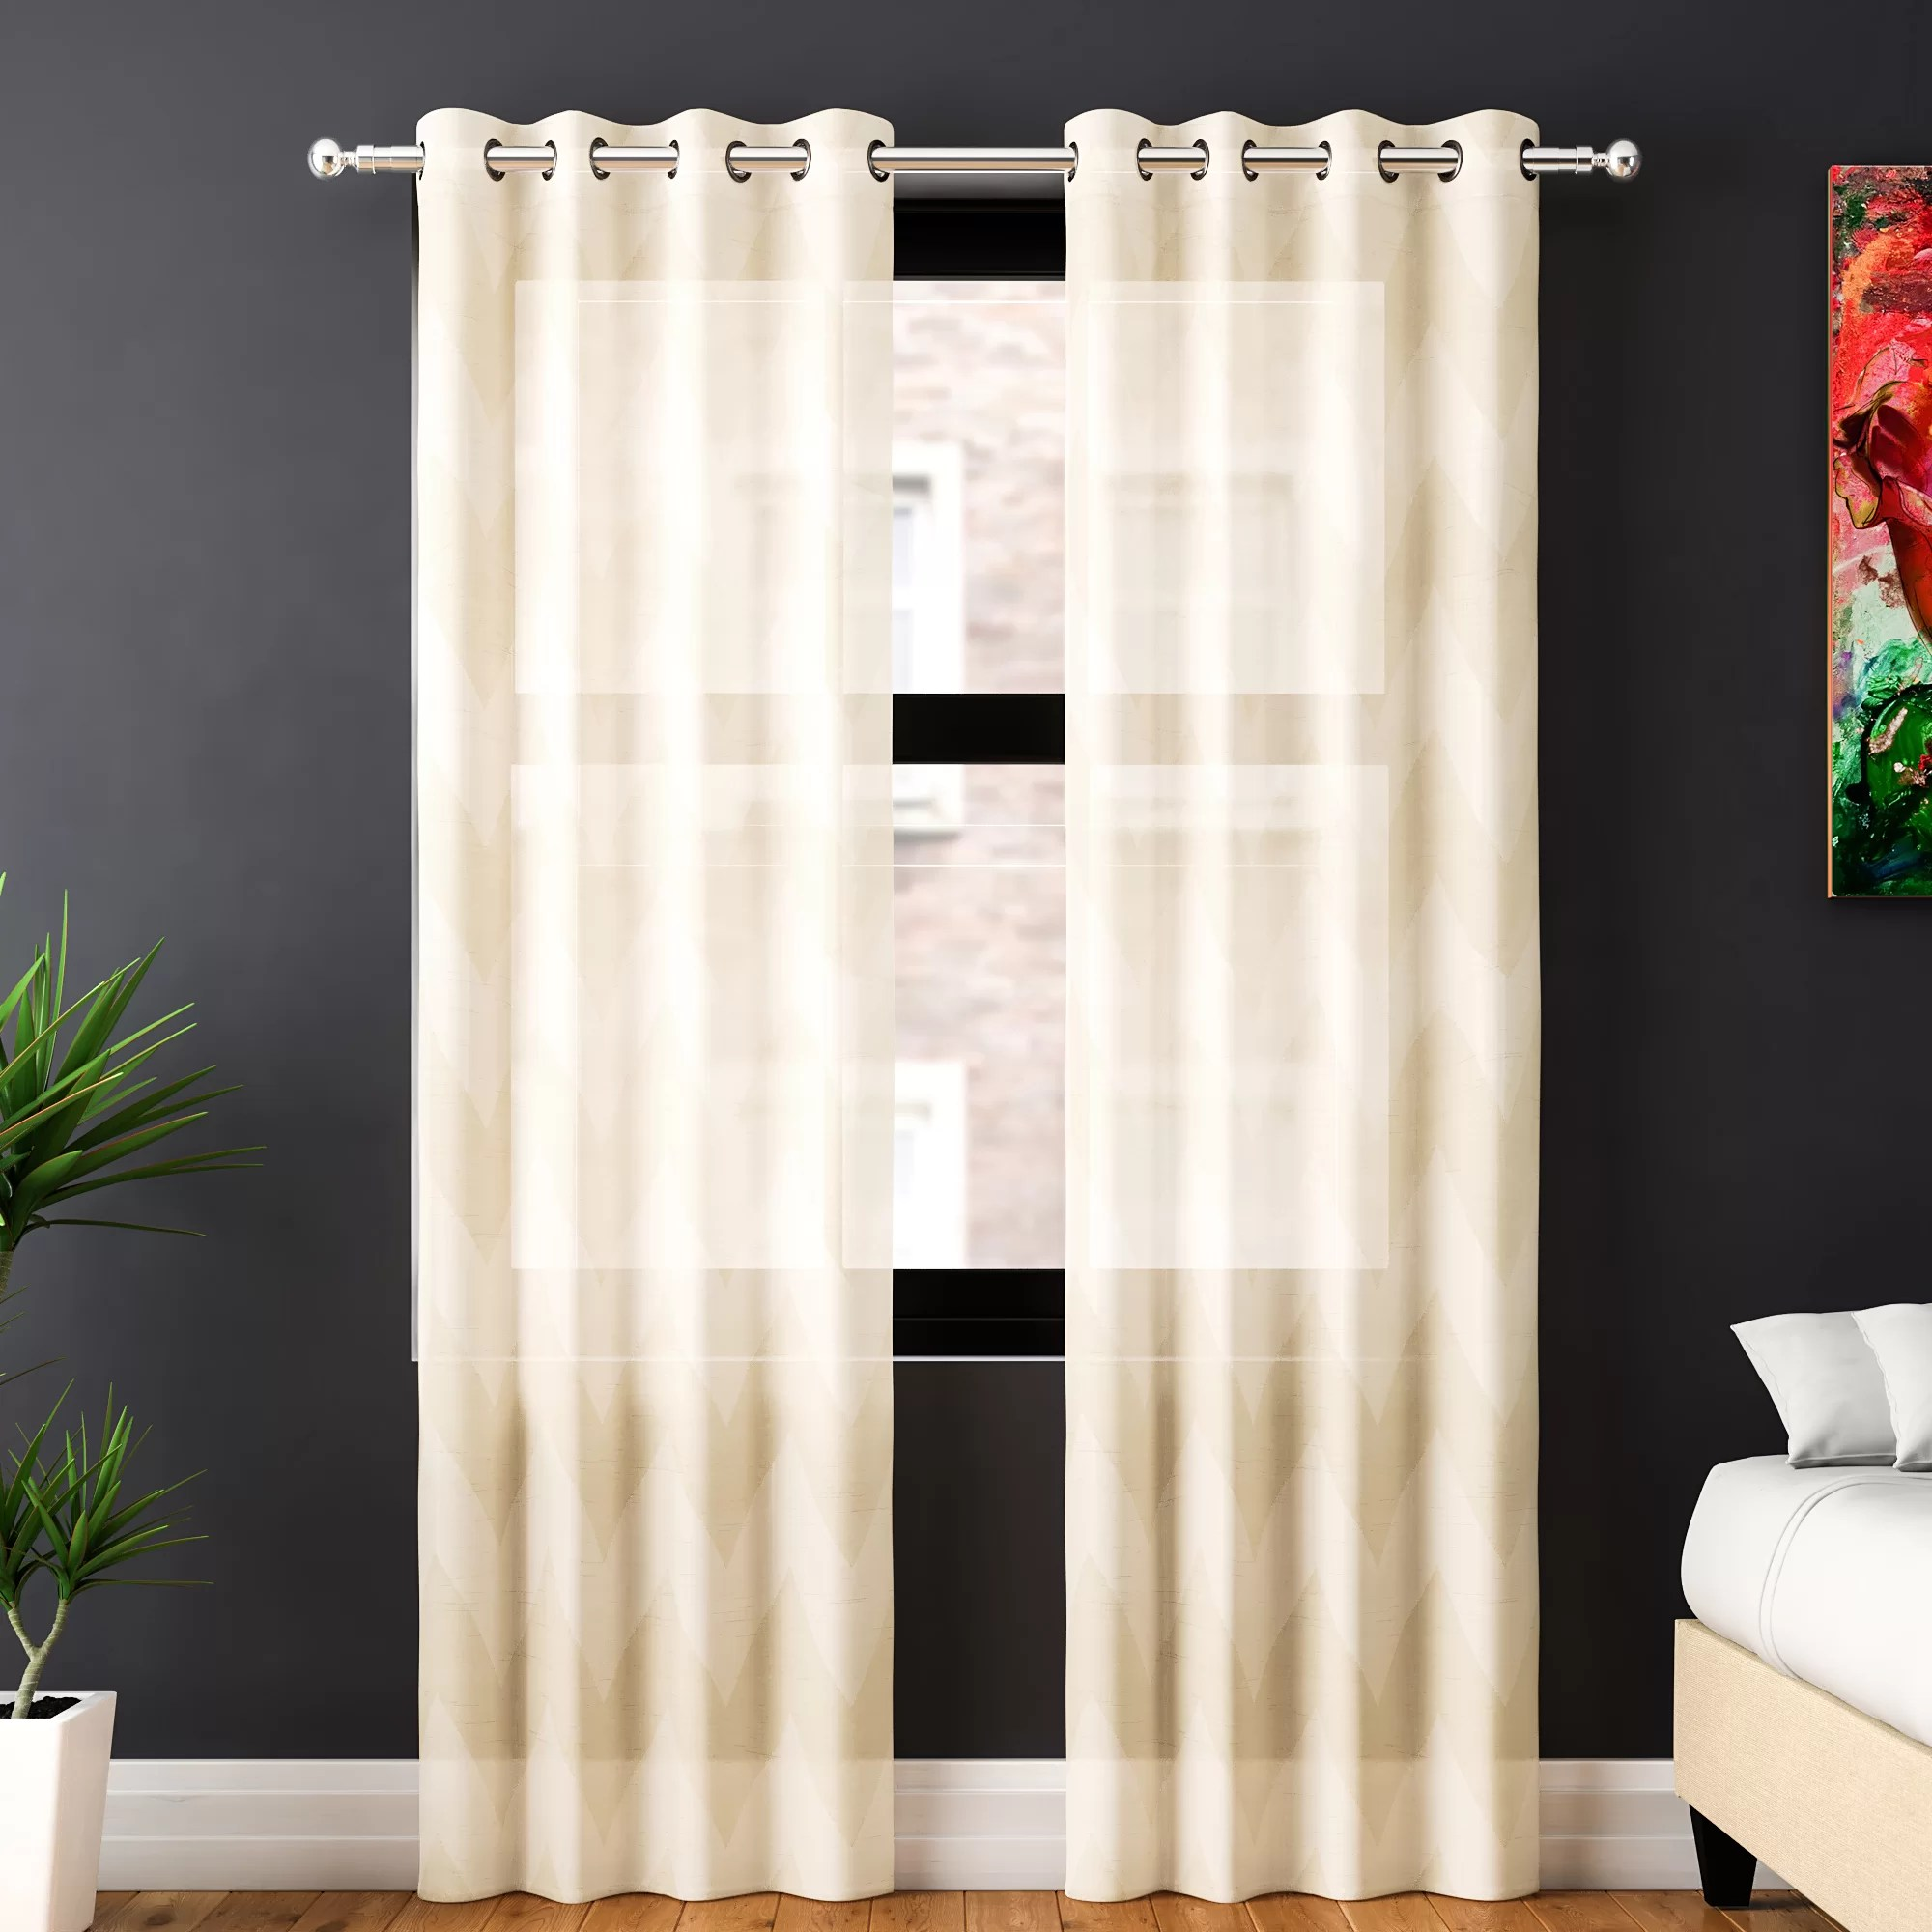 Cheap Stylish Curtains Arispe Chevron Sheer Grommet Curtain Panels